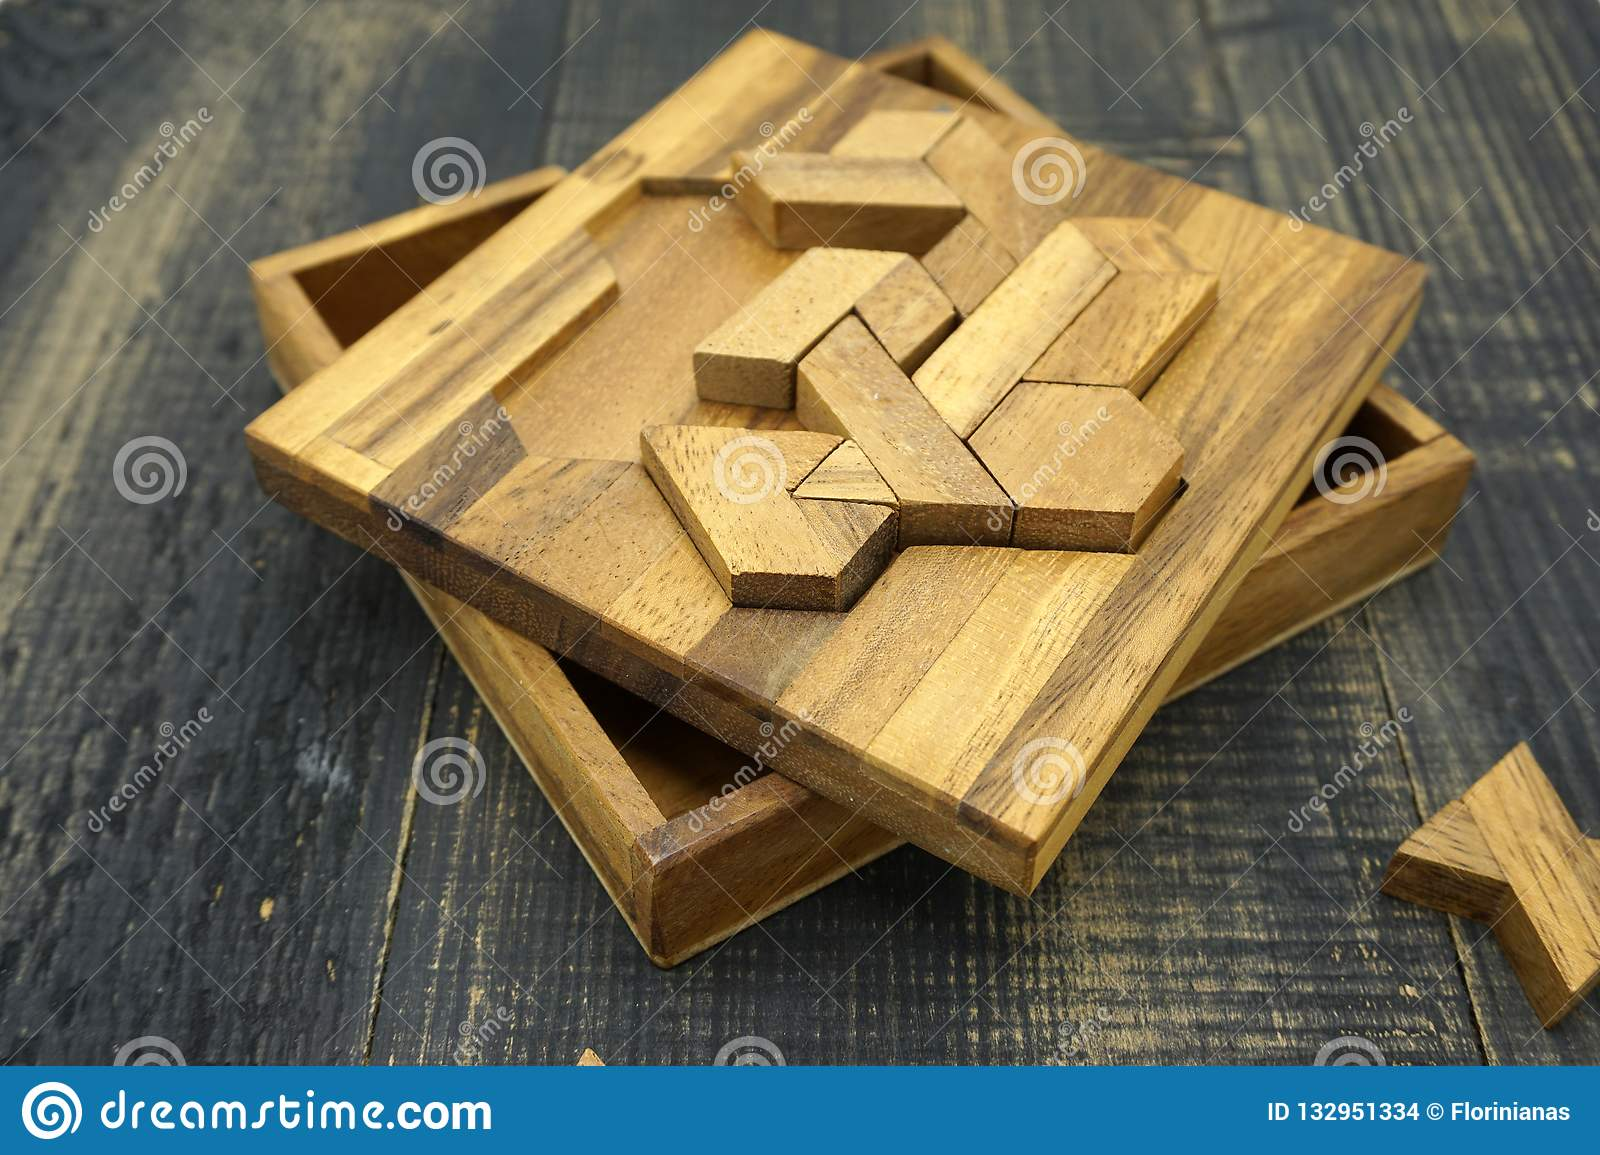 Tangram, Chinese traditional puzzle game